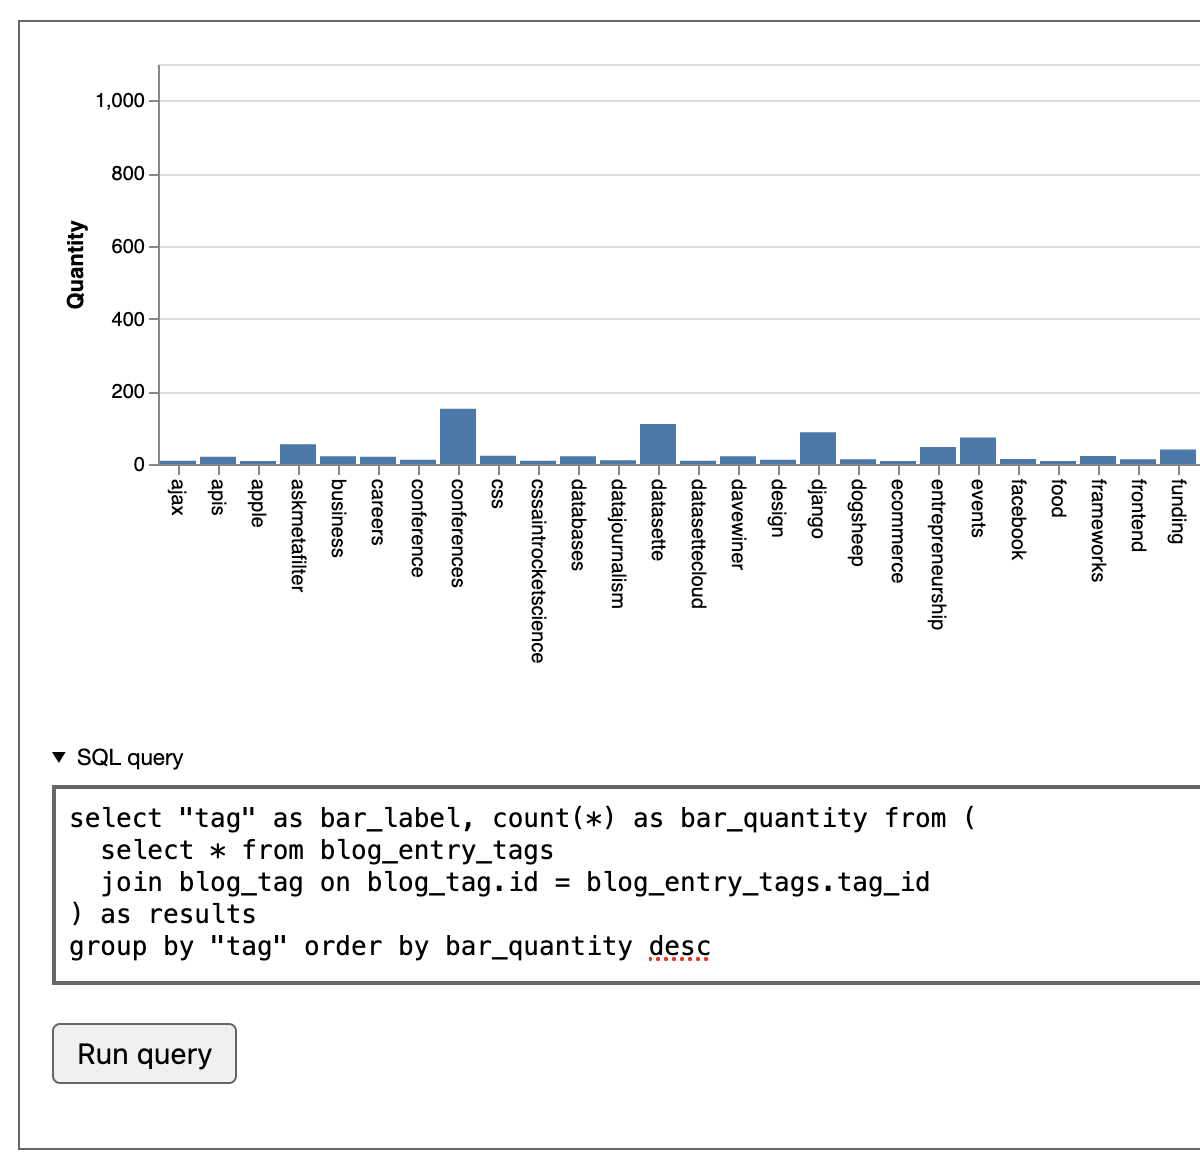 The query shows its results as a bar chart